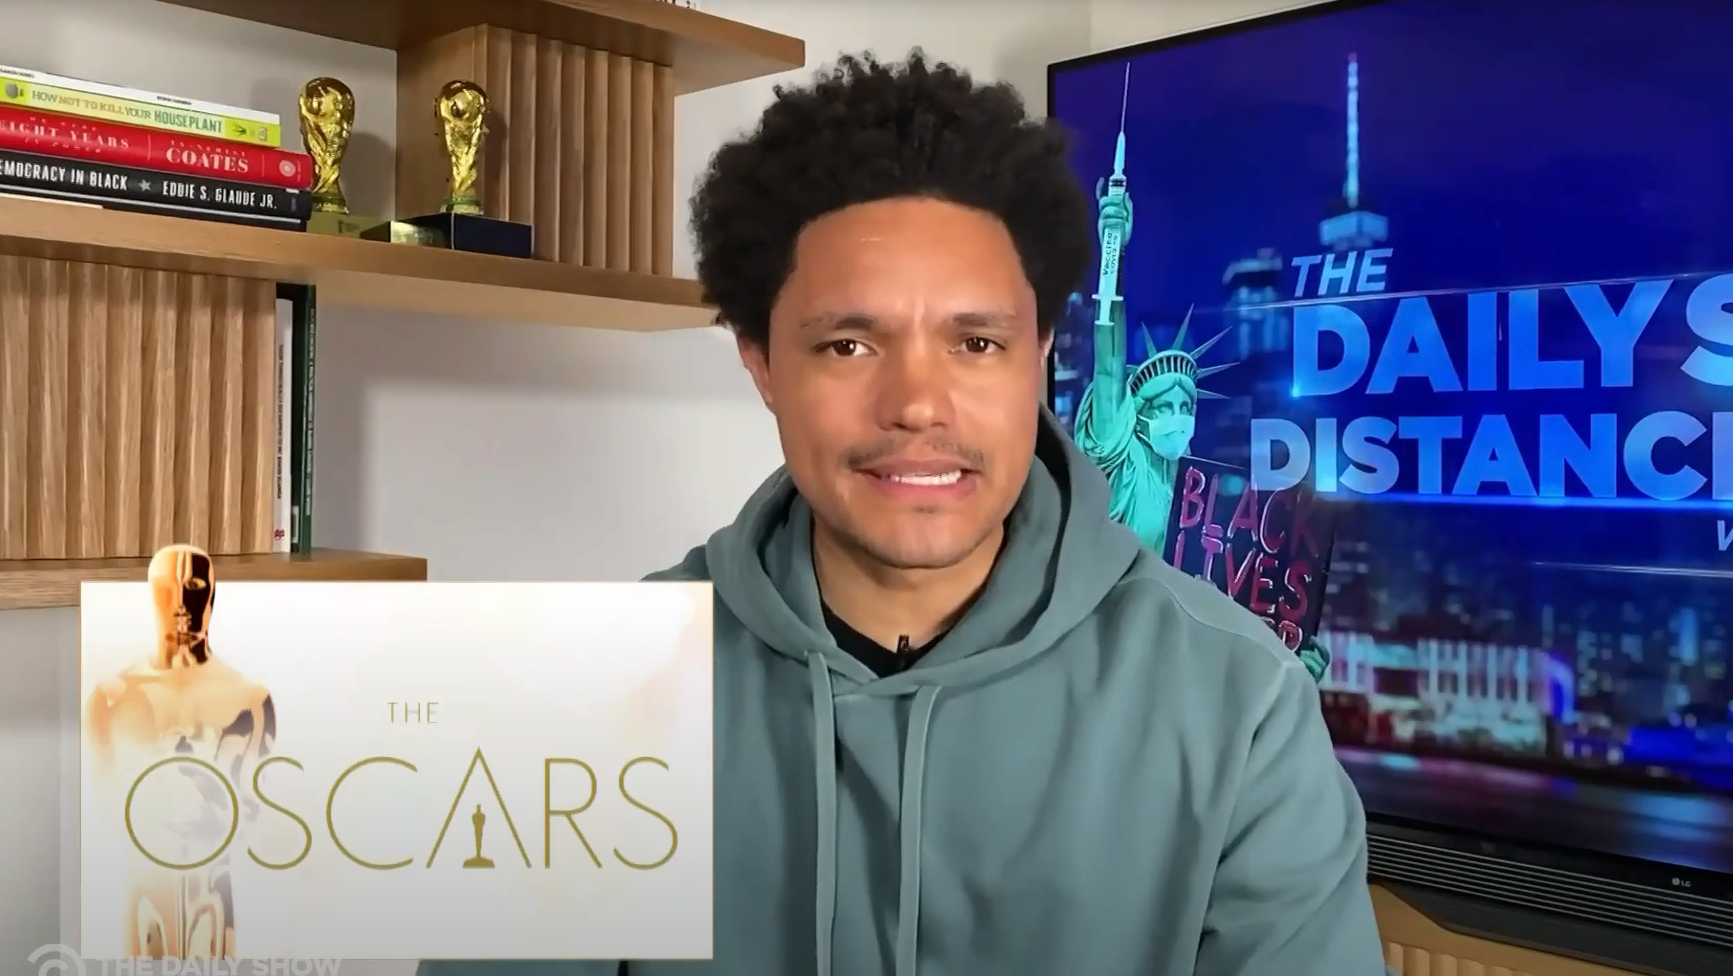 """The Future Of Award Shows"" Or An Elaborate Funeral? Late-Night Hosts Give Their Thoughts On 2021 Oscars"